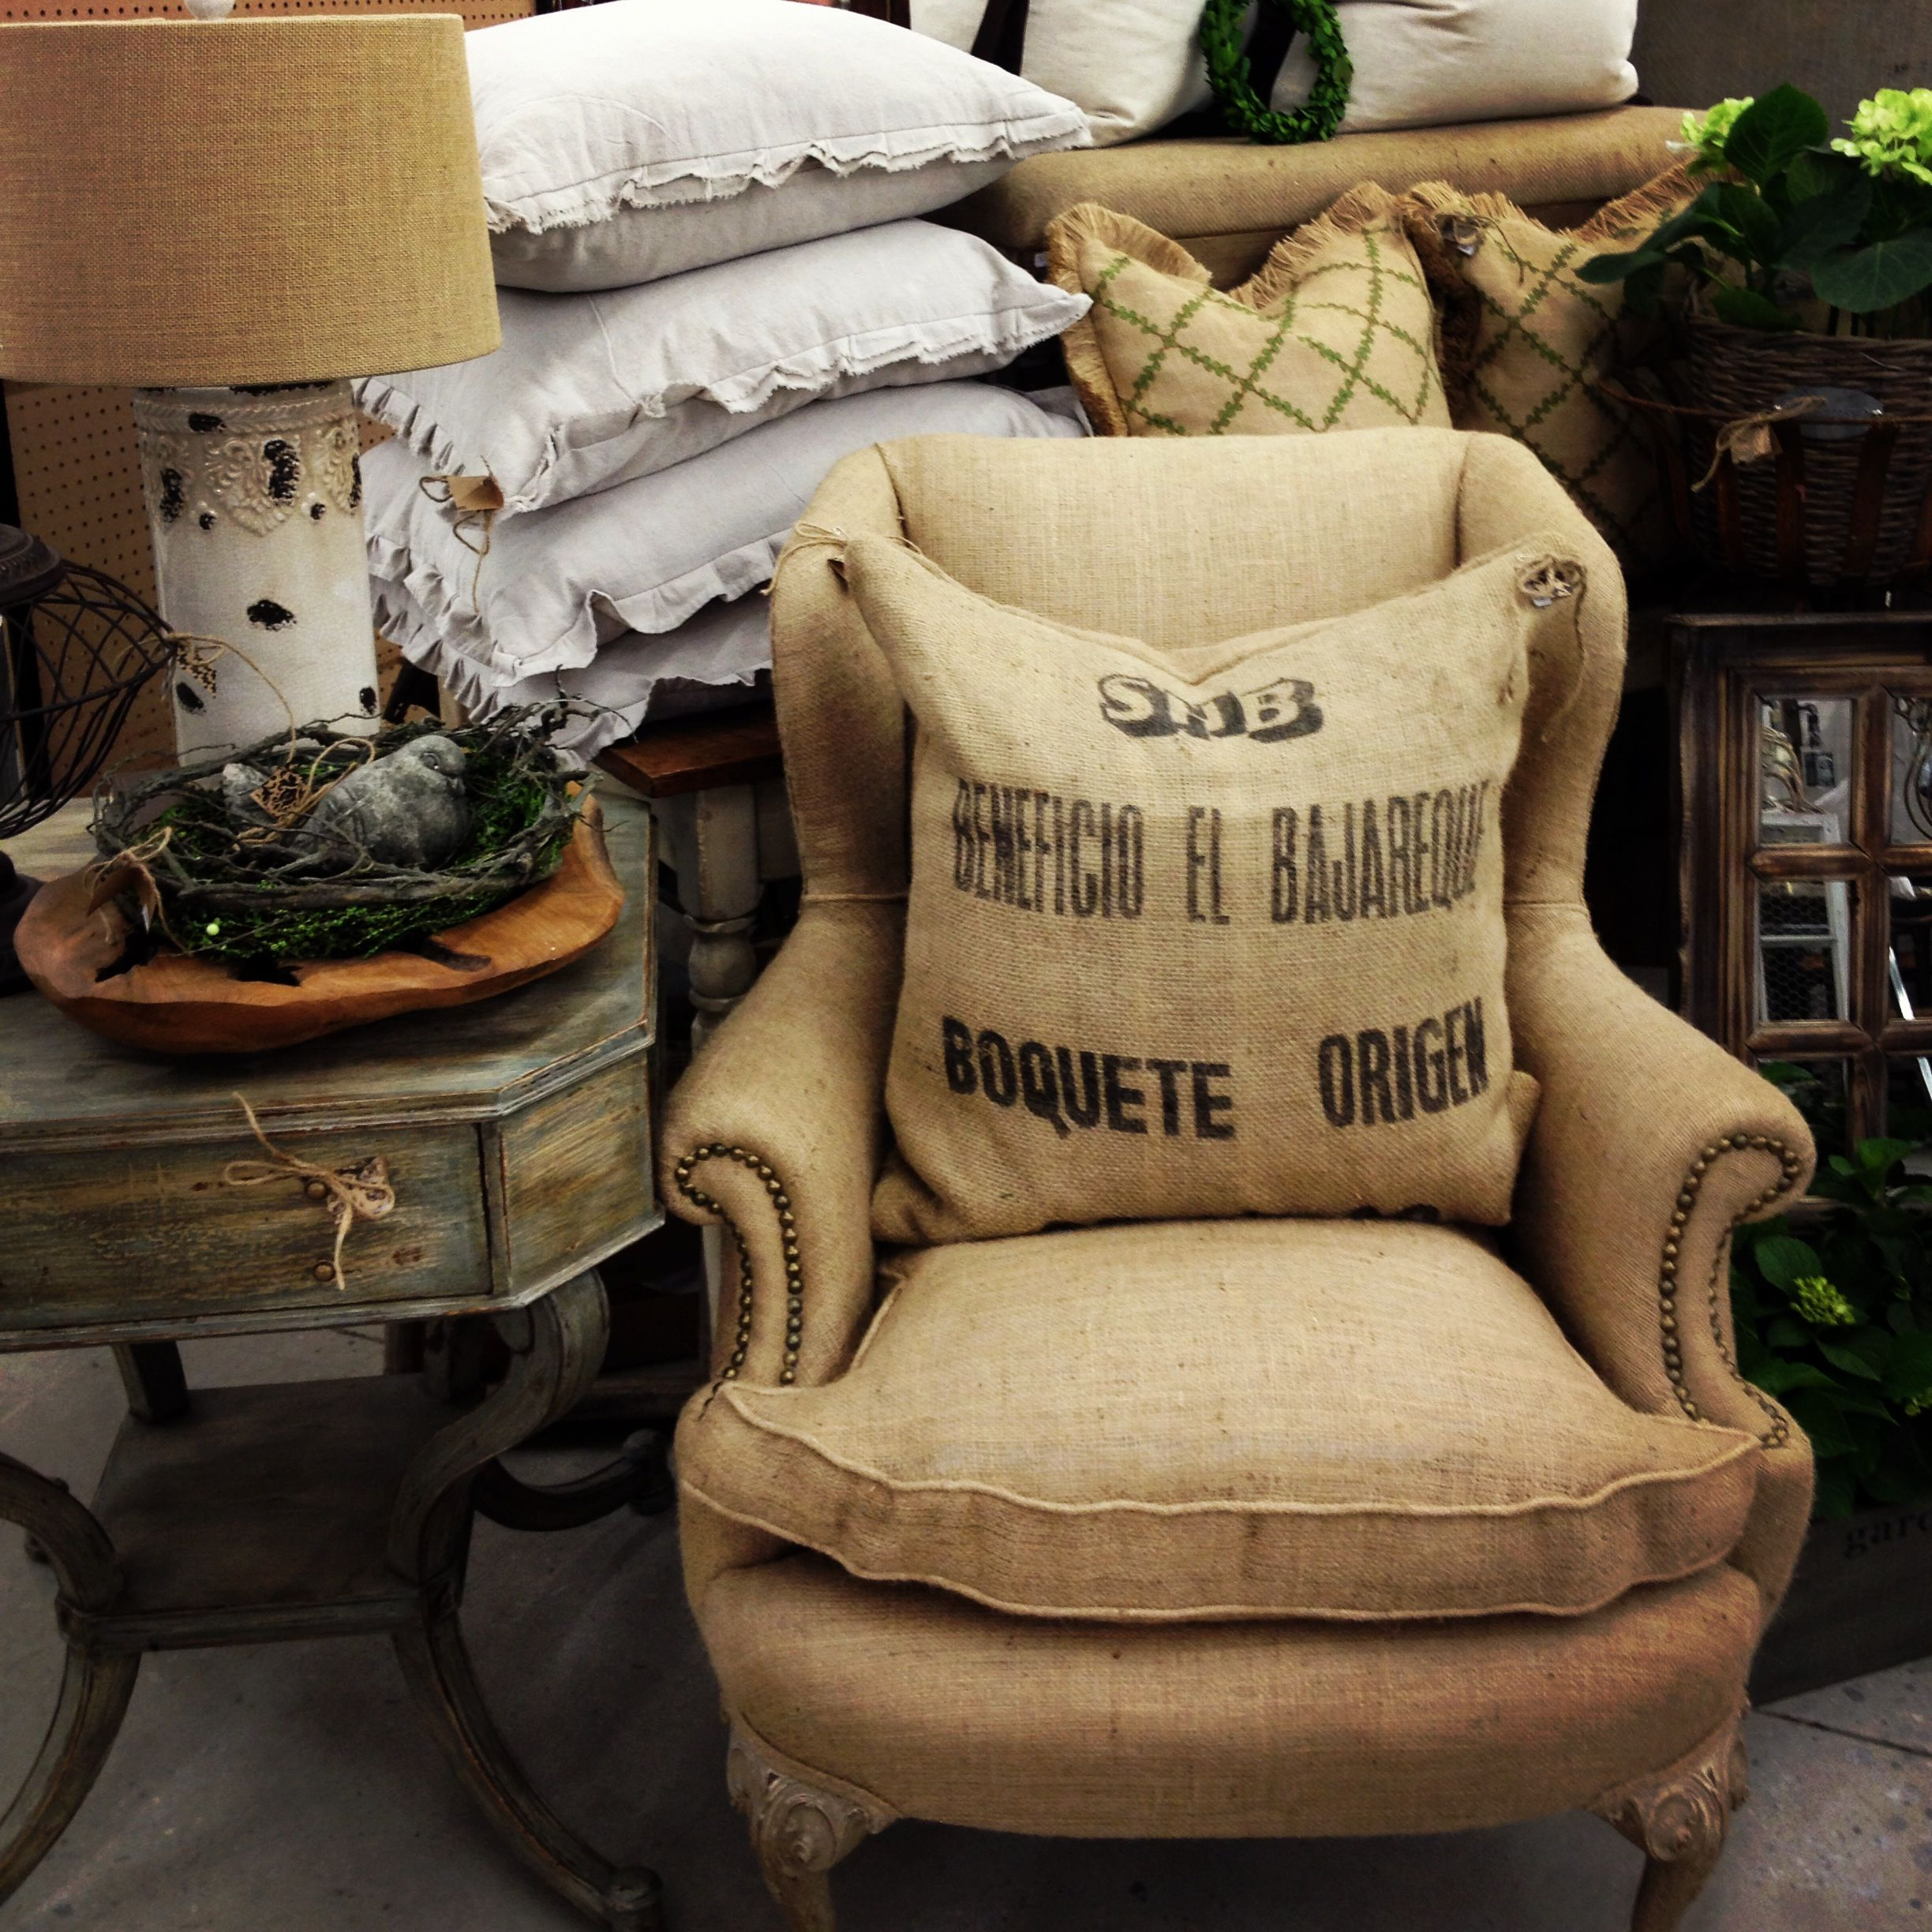 Burlap Wingback Chair, Painted Side Table, Pillows